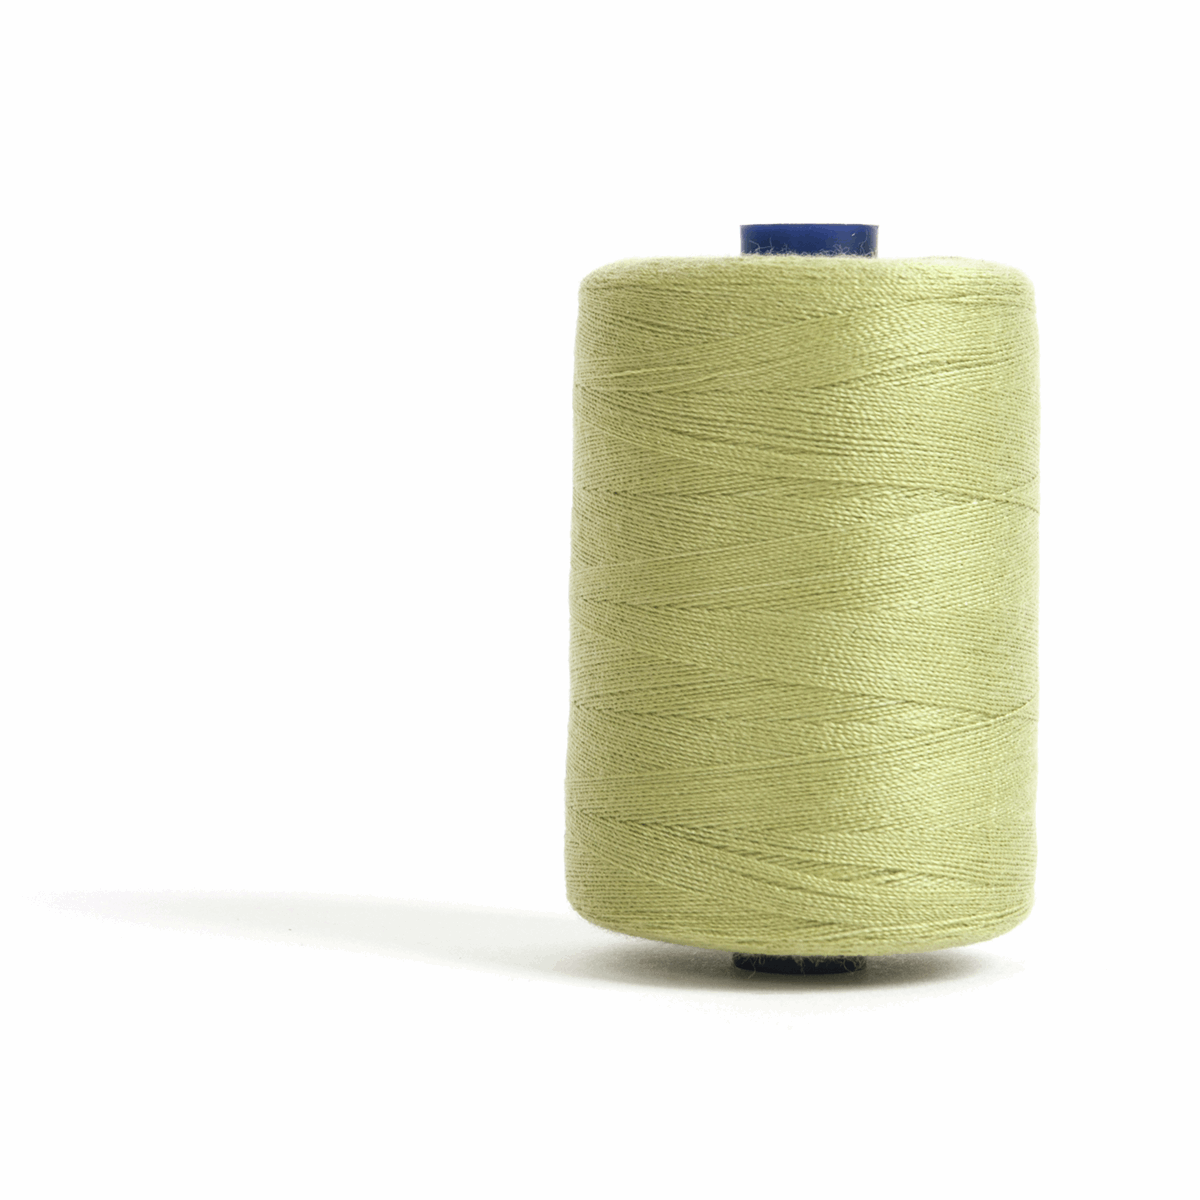 Picture of Sewing and Overlocking Thread: 5 x 1,000m: Grass